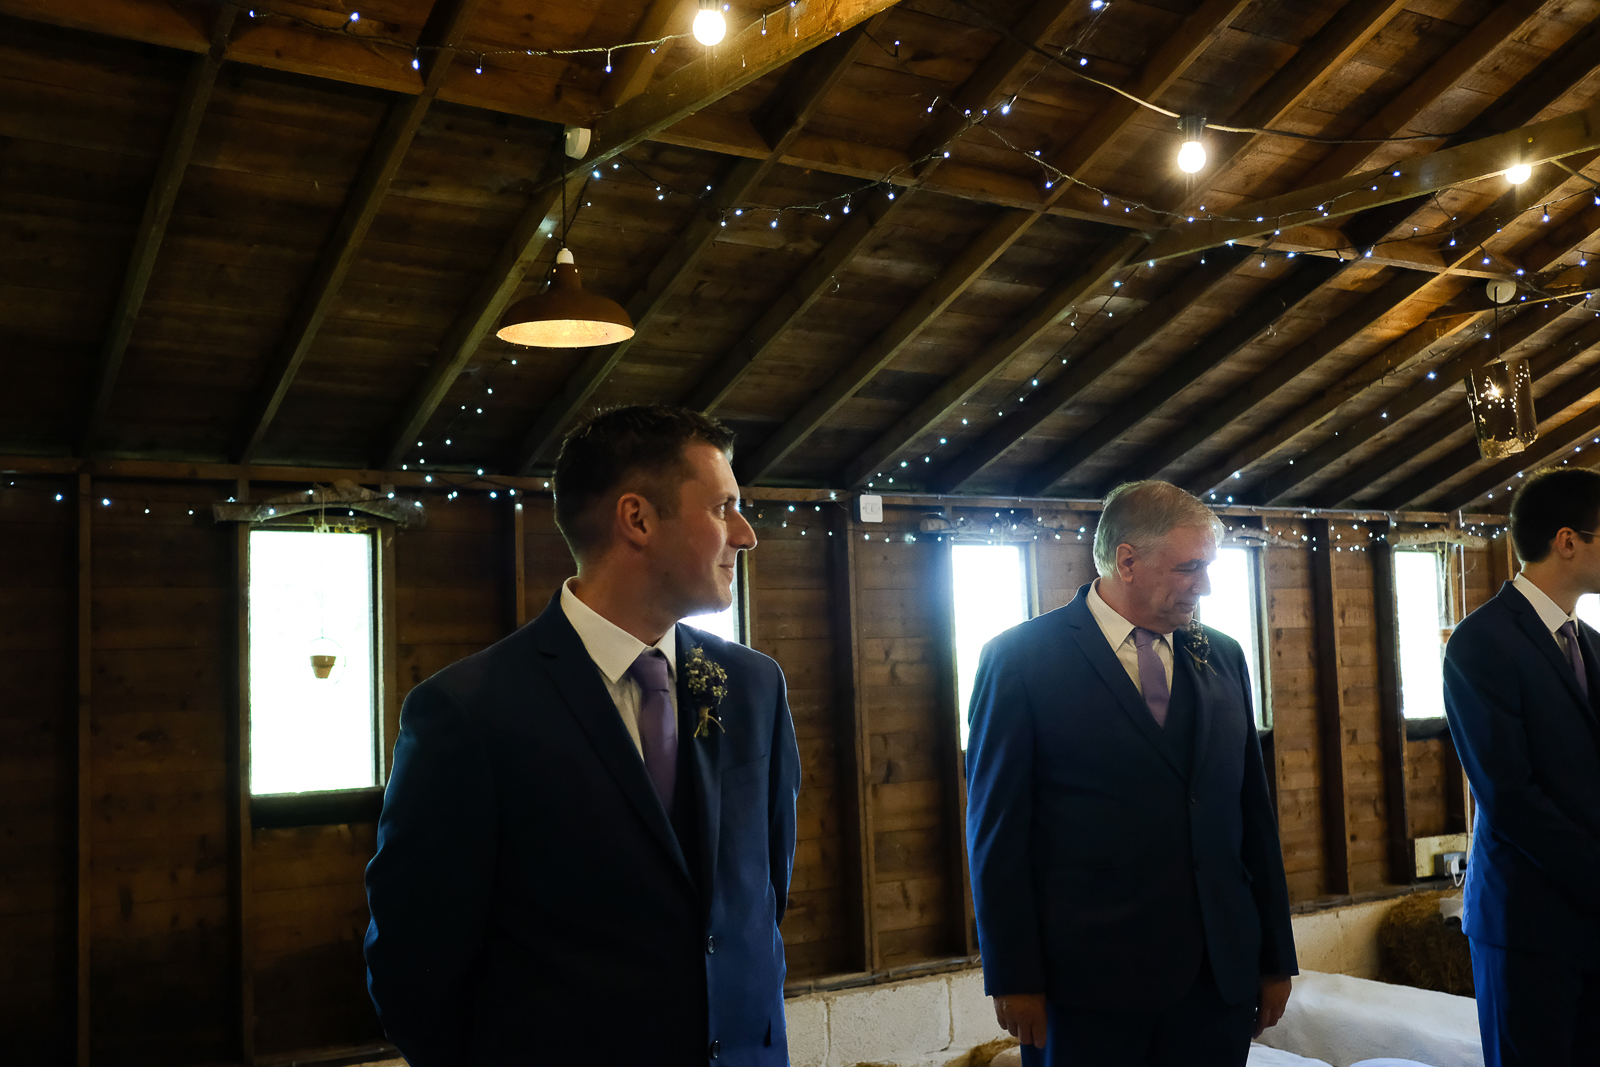 Rustic elopement at The Cow Shed in Cornwall 031.jpg